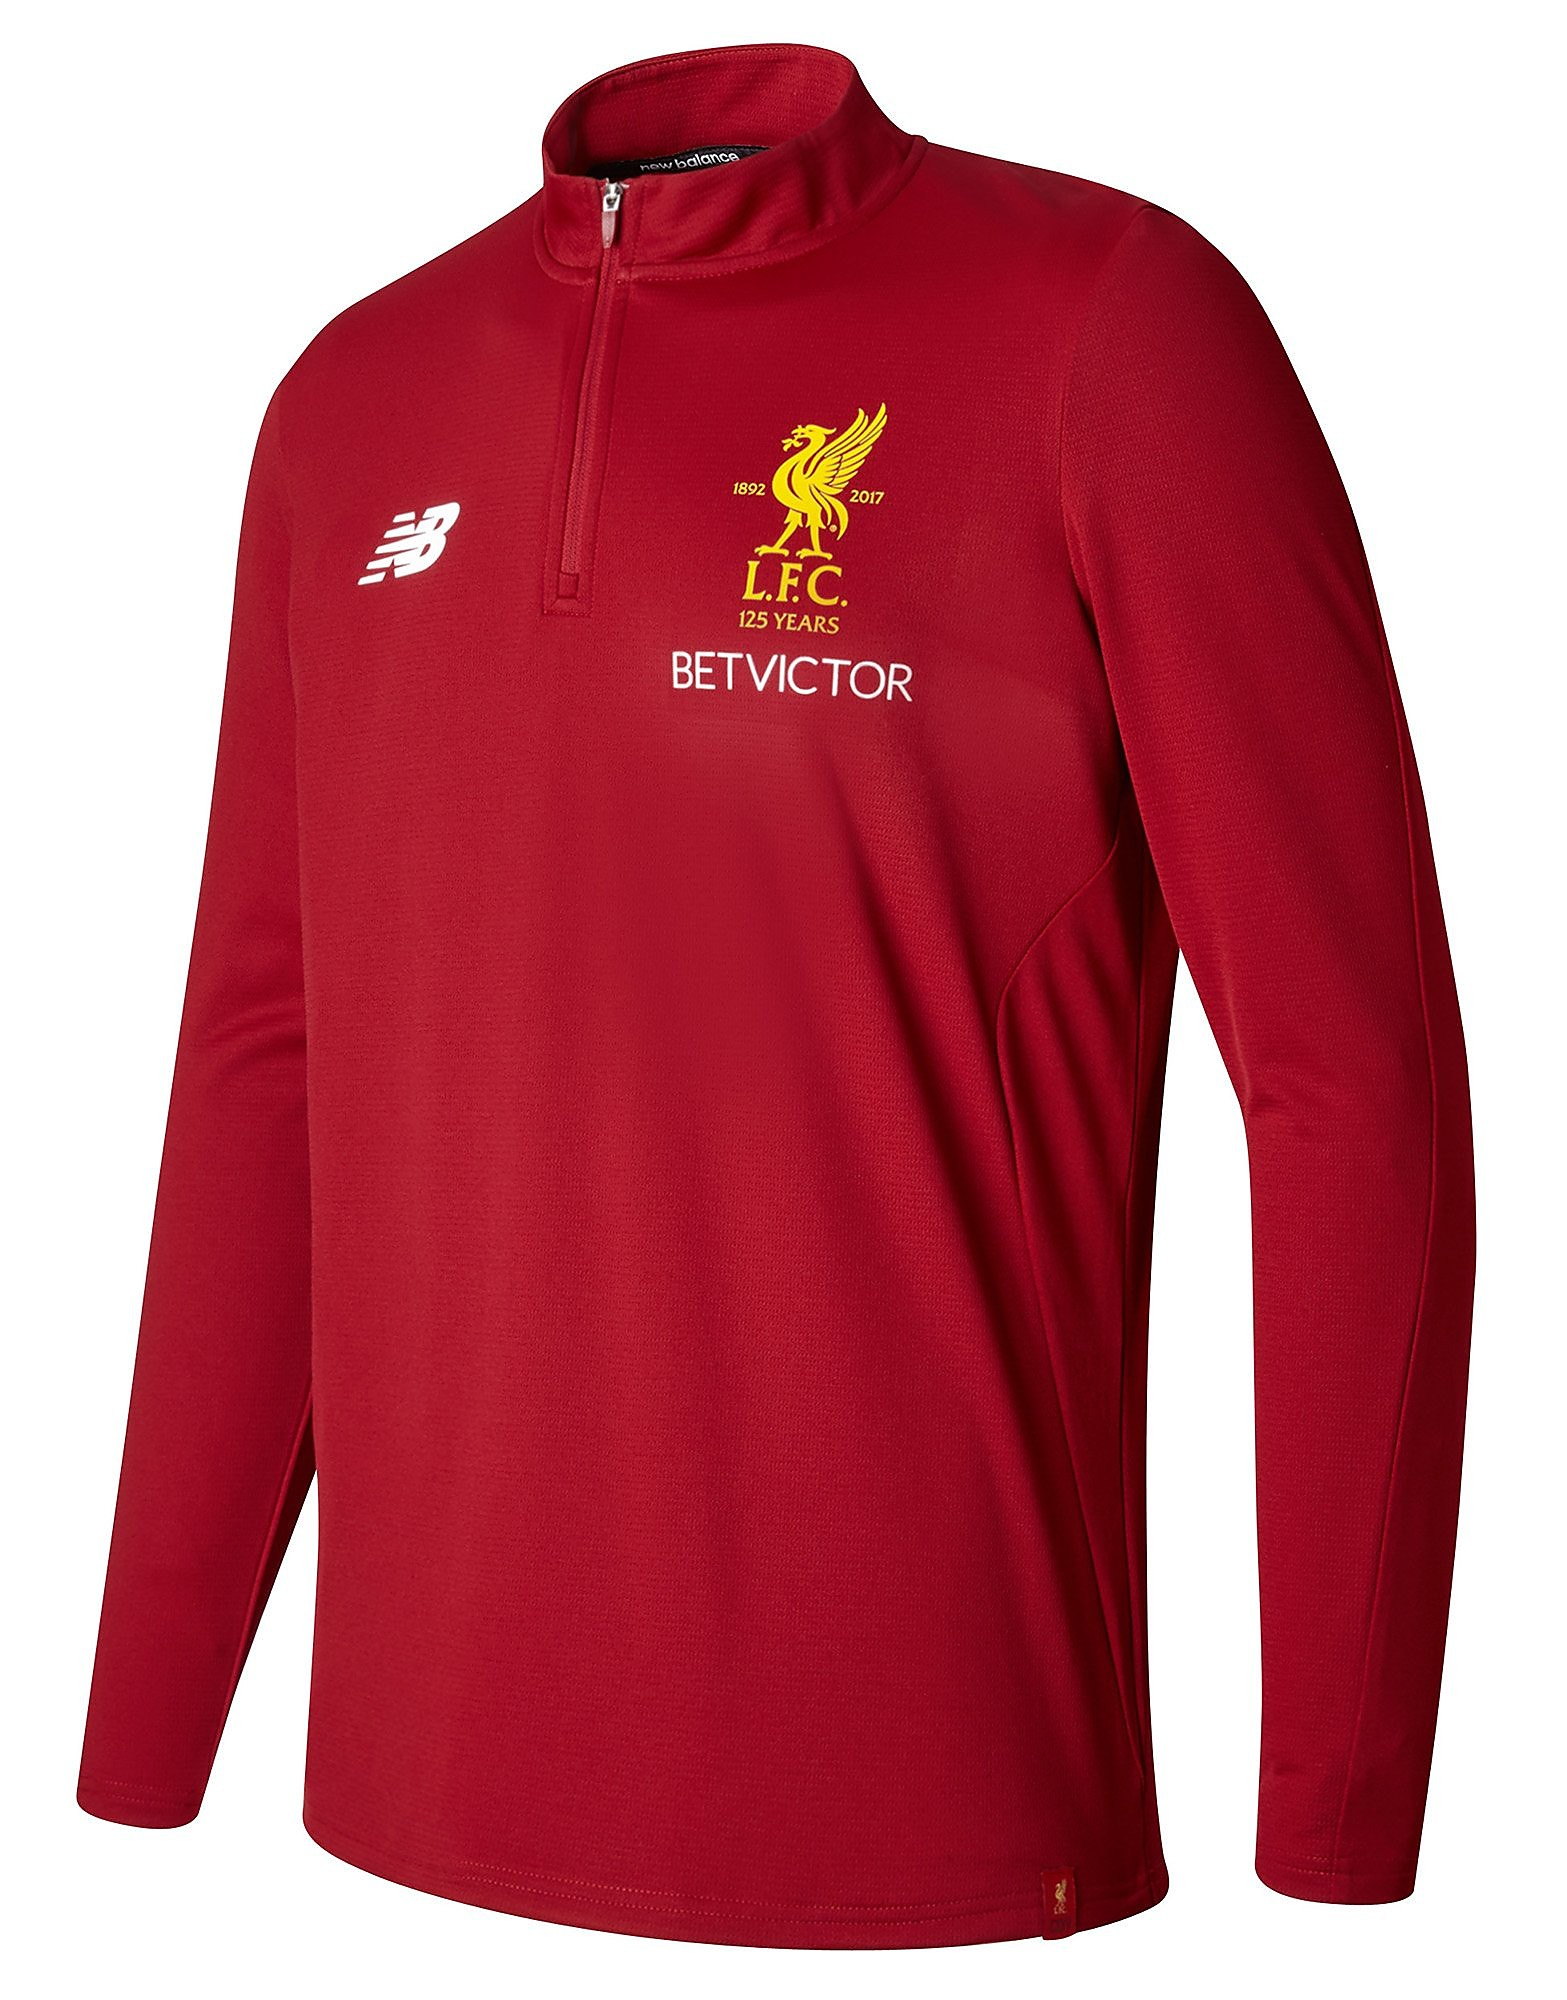 New Balance Liverpool FC 2017 1/2 Zip Top